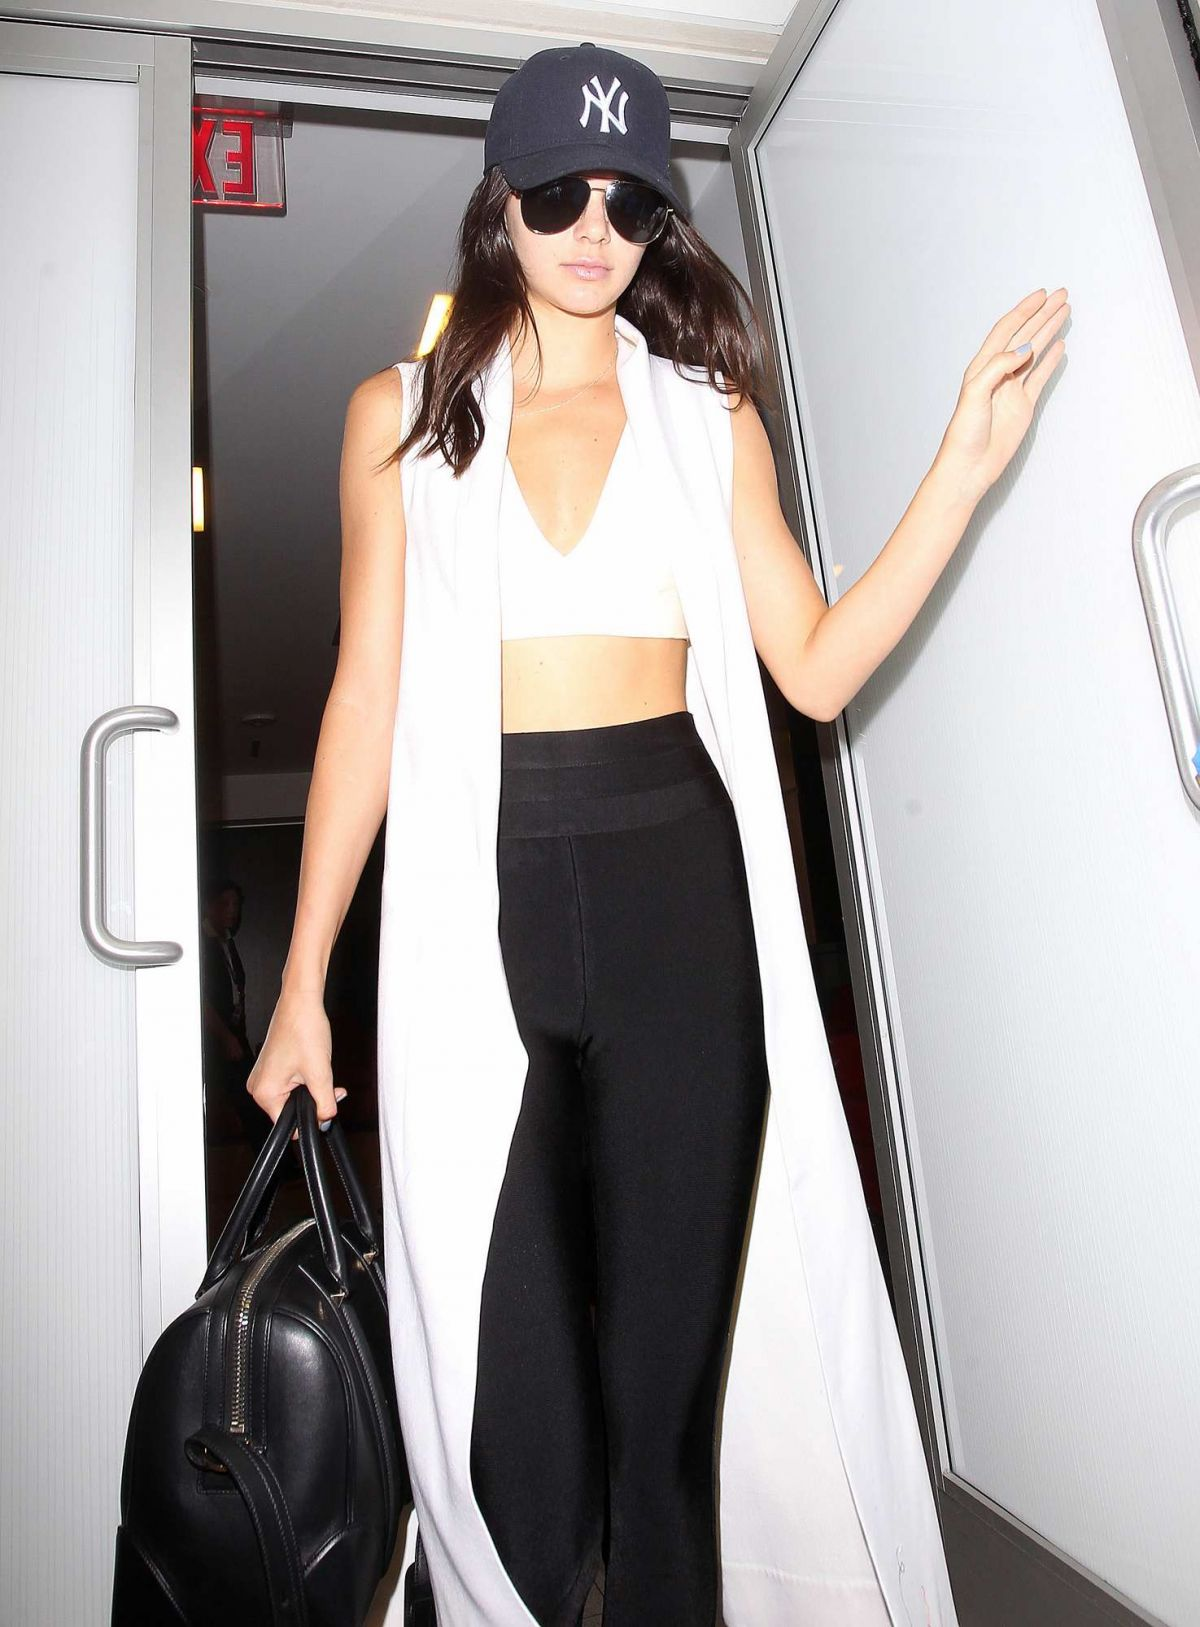 KENDALL JENNER Arrives at LAX Airport in Los Angeles 08/29/2015